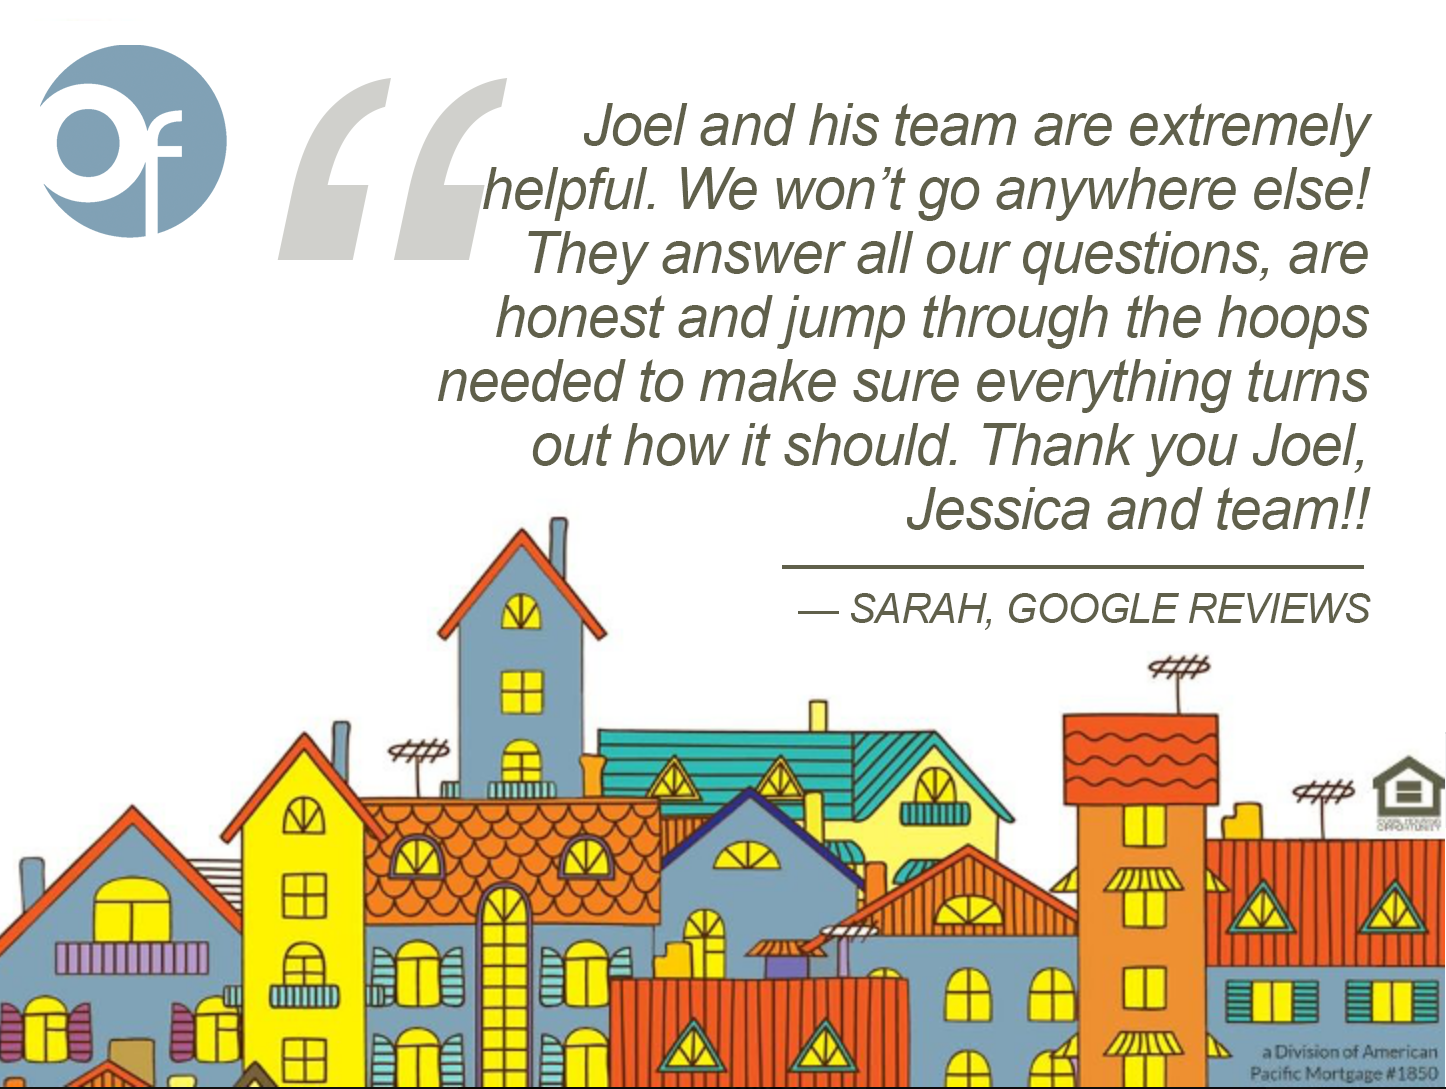 Joel and his team are extremely helpful. We won't go anywhere else! They answer all our questions, are honest and jump through the hoops needed to make sure everything turns out how it should. Thank you Joel, Jessica and team!!